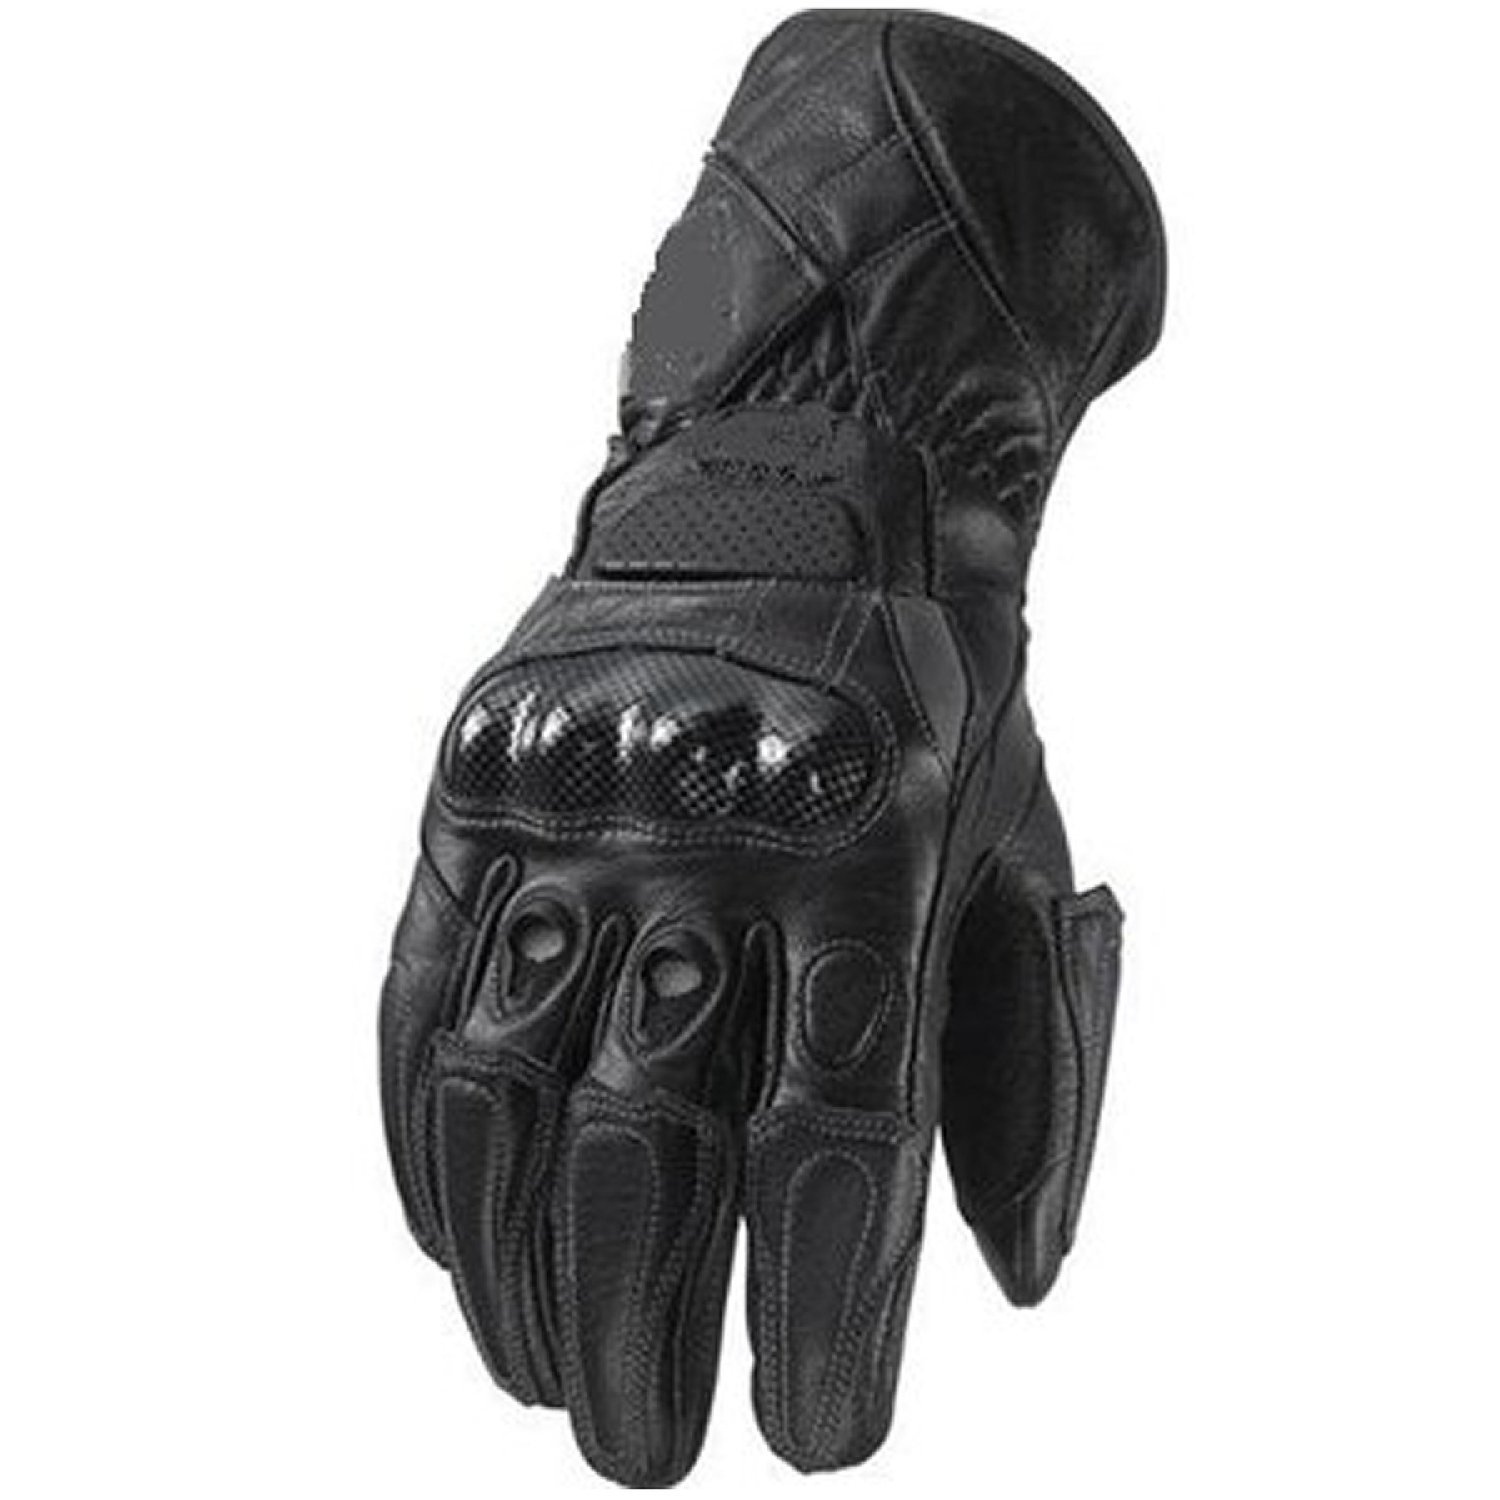 Mens leather gloves amazon uk - New Biker Cowhide Leather Motorbike Motorcycle Heavy Duty Waterproof Gloves Collection B3d Medium Amazon Co Uk Clothing